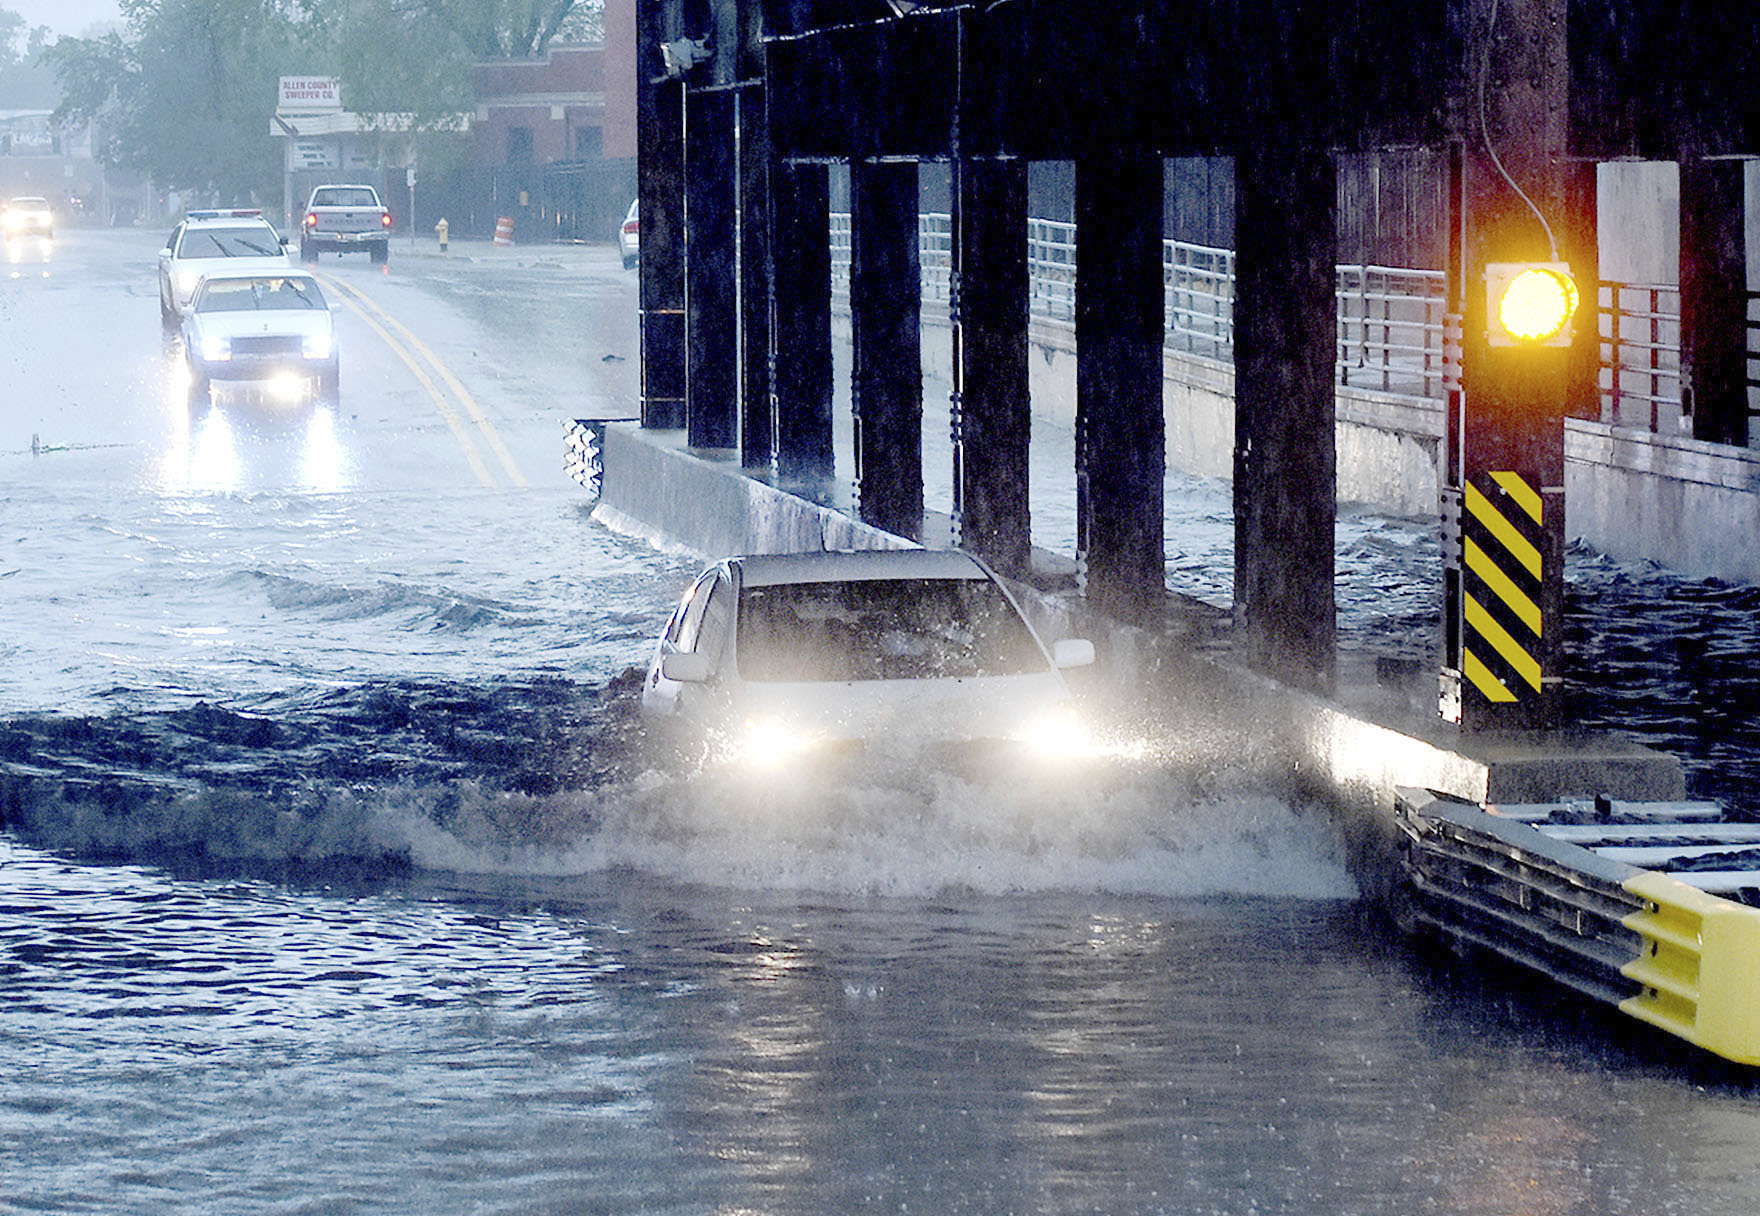 Great City Cars >> Heavy rains spark flash flooding in Fort Wayne - The Blade